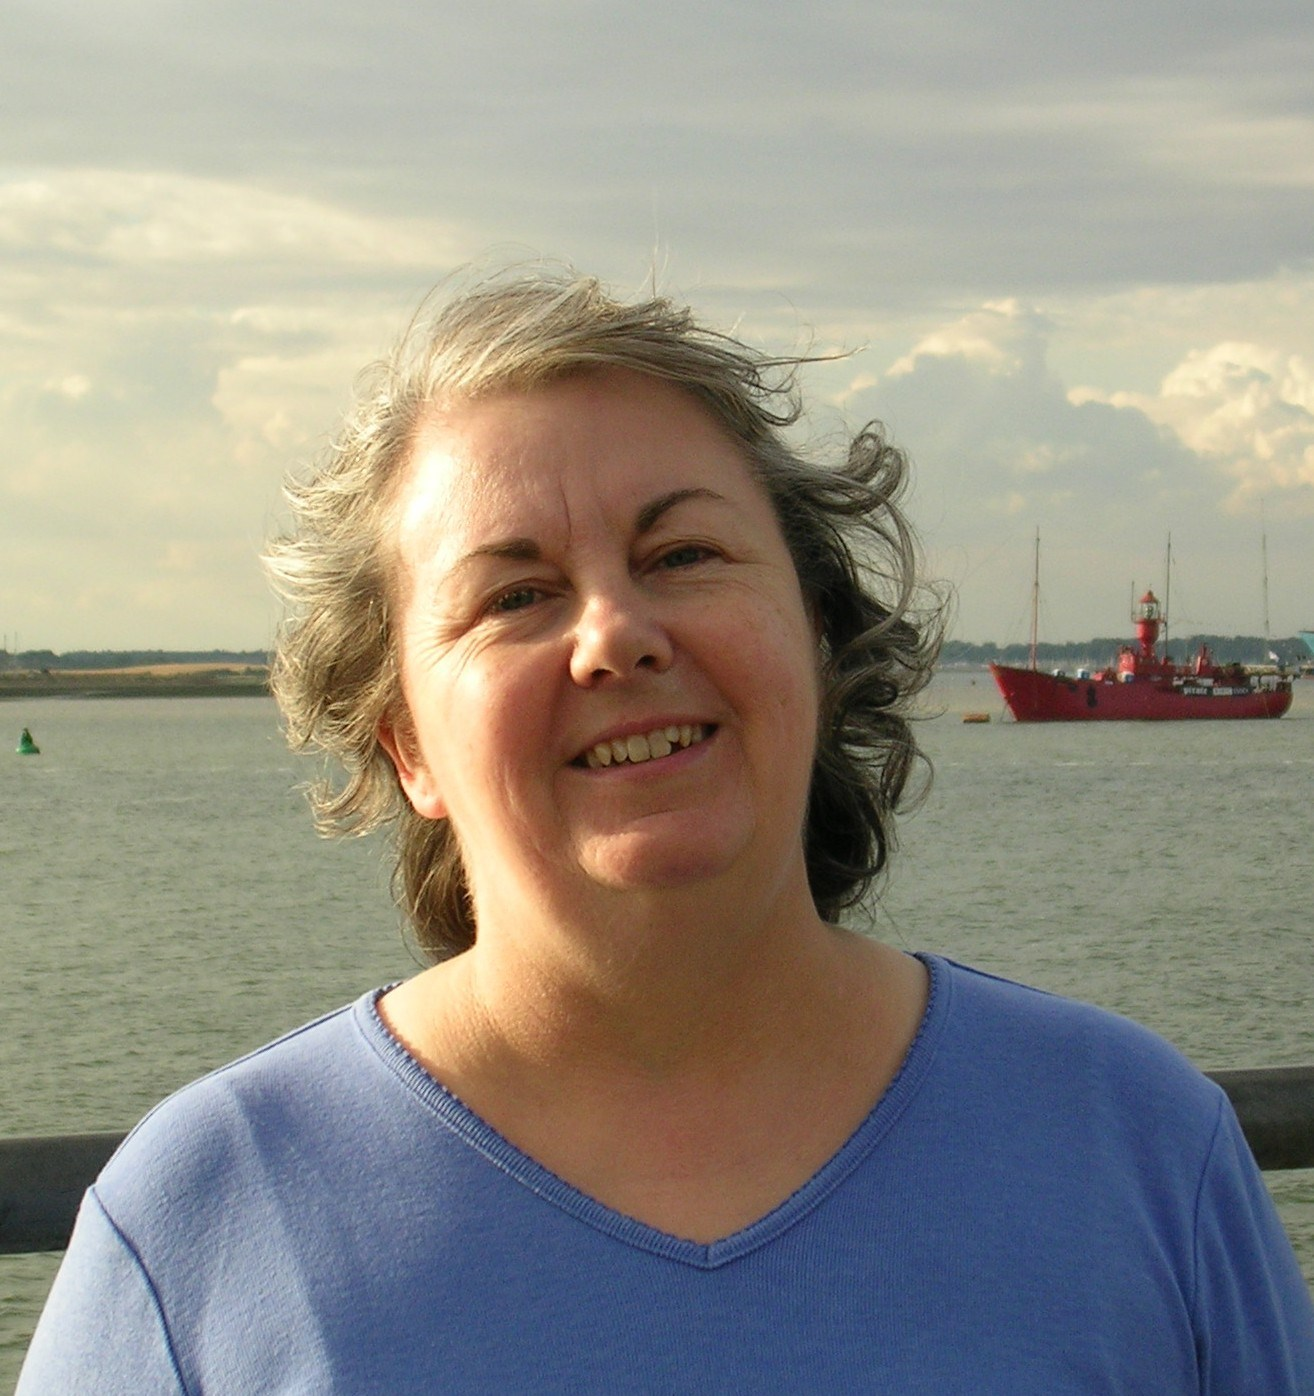 A happy Linda, a few years ago, on a visit to her beloved Radio Pirates at Harwich.